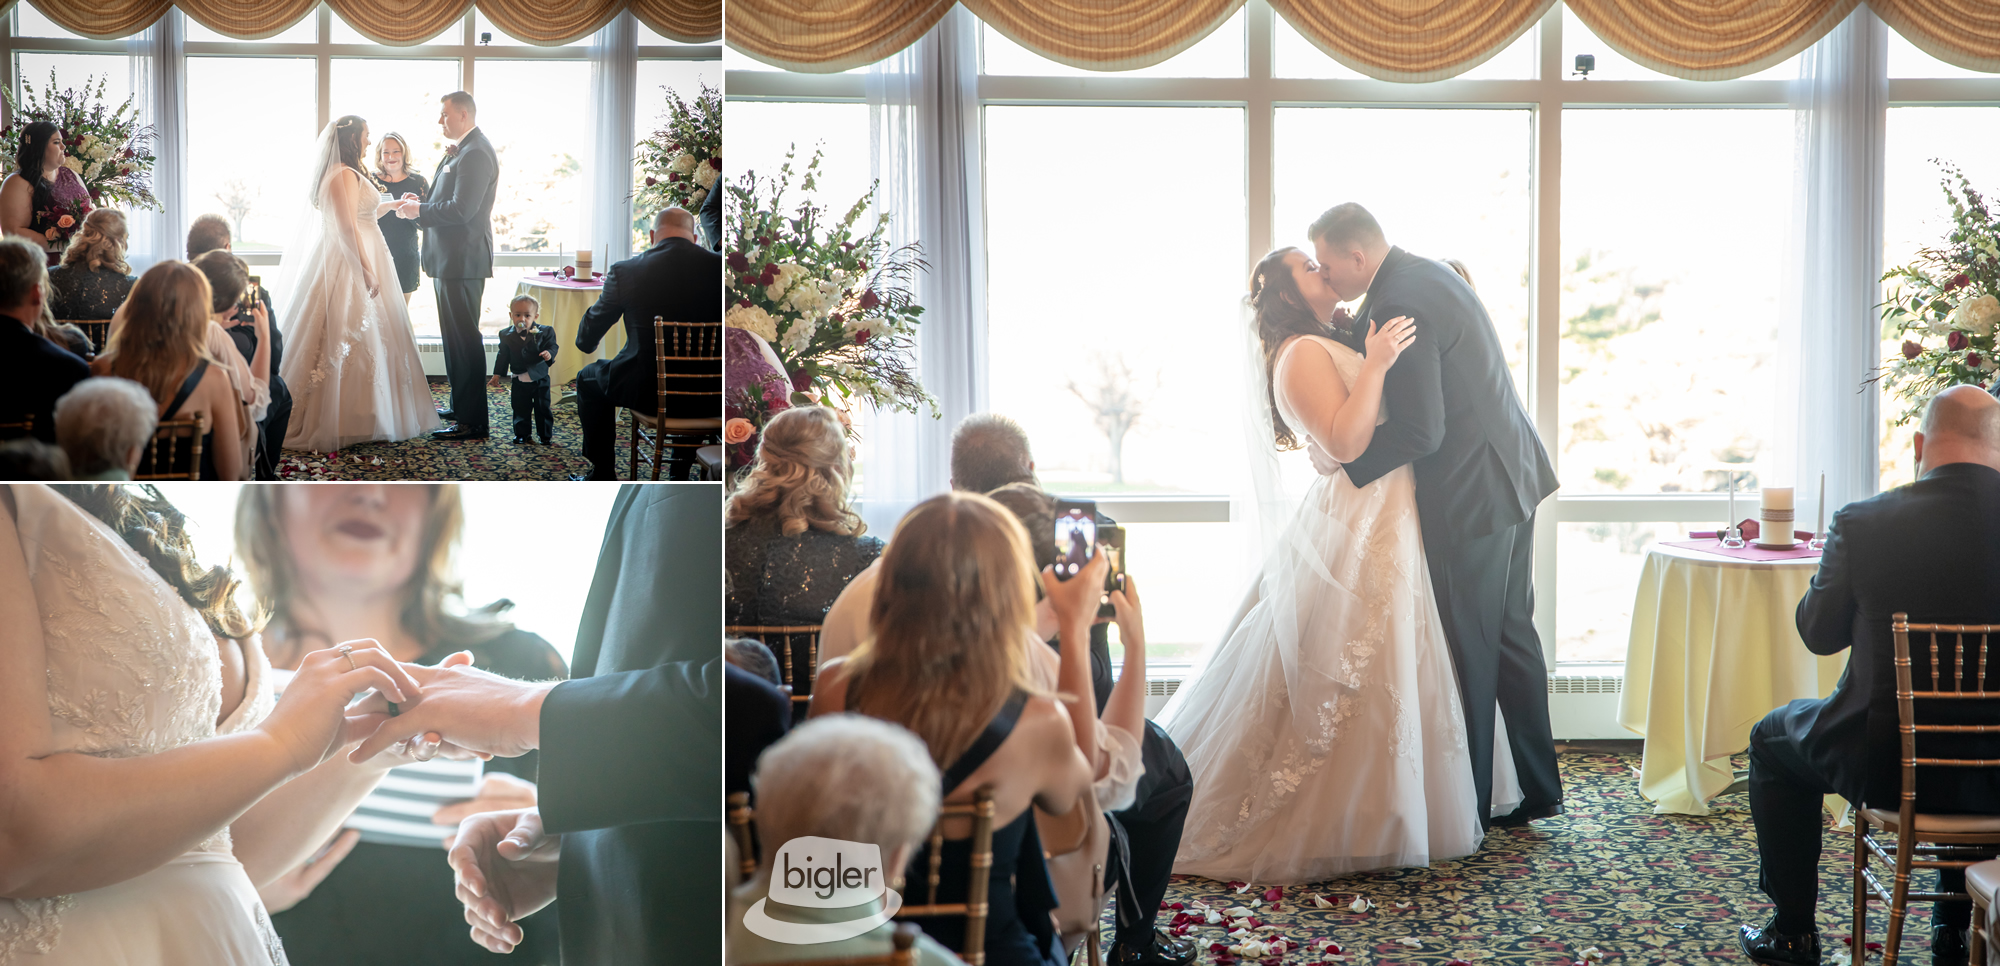 20181110_-_16_-_Amanda_and_Michael,_Albany_Country_Club,_Wedding_Photos